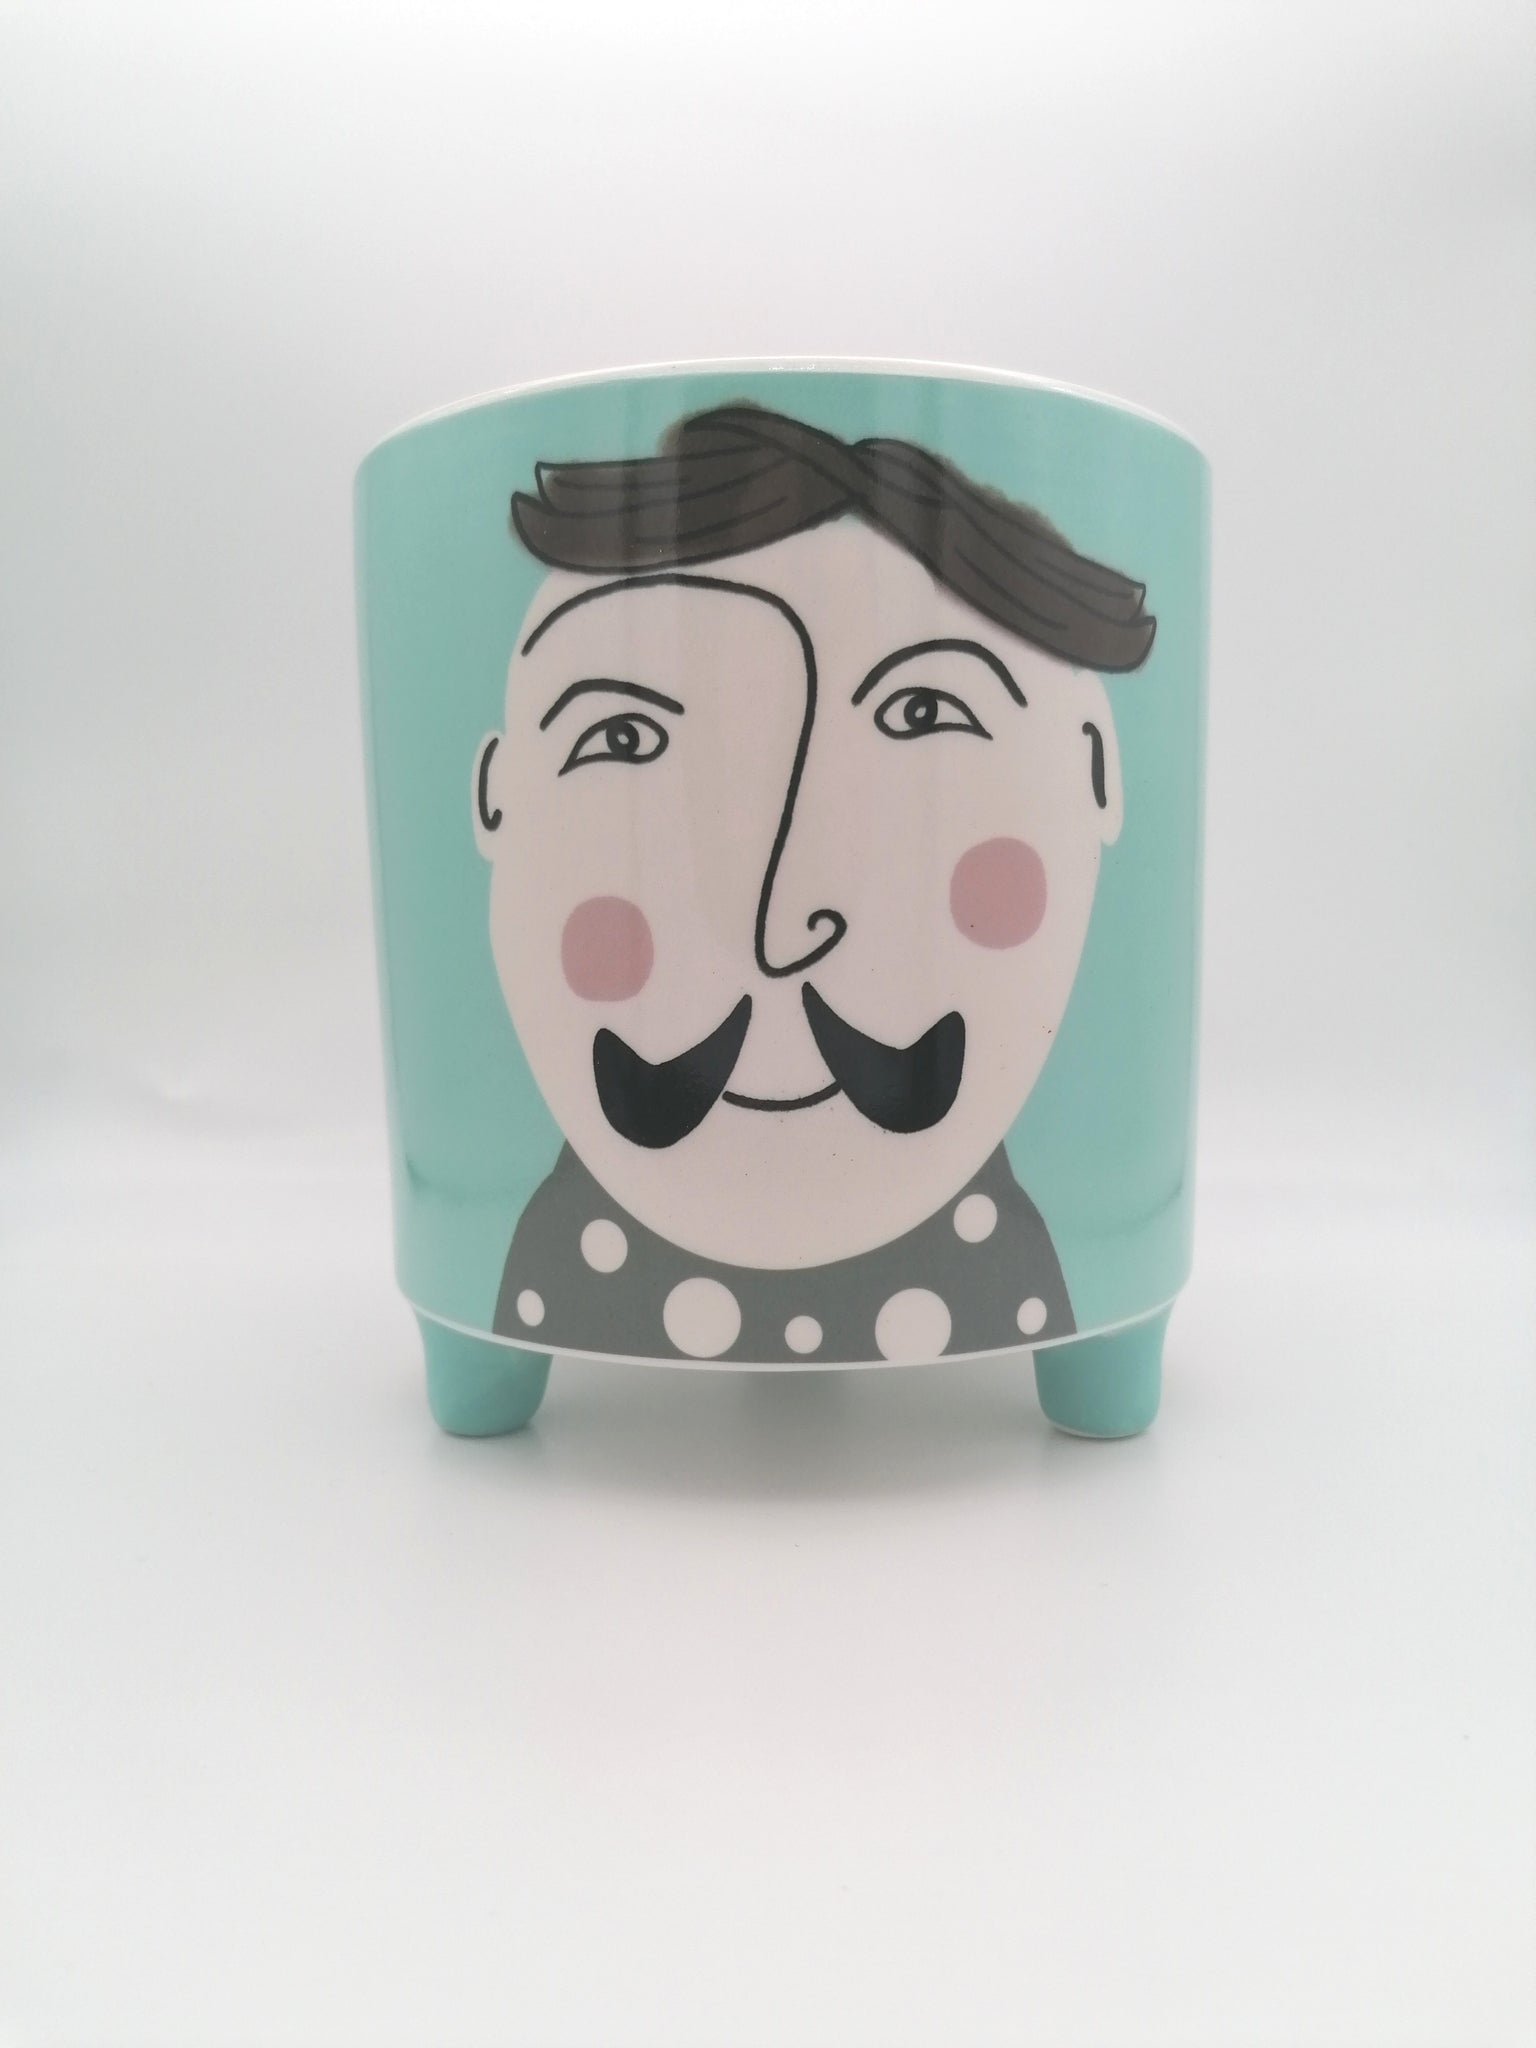 Imperfect Hipster Josh #2 Planter - Ø12cm